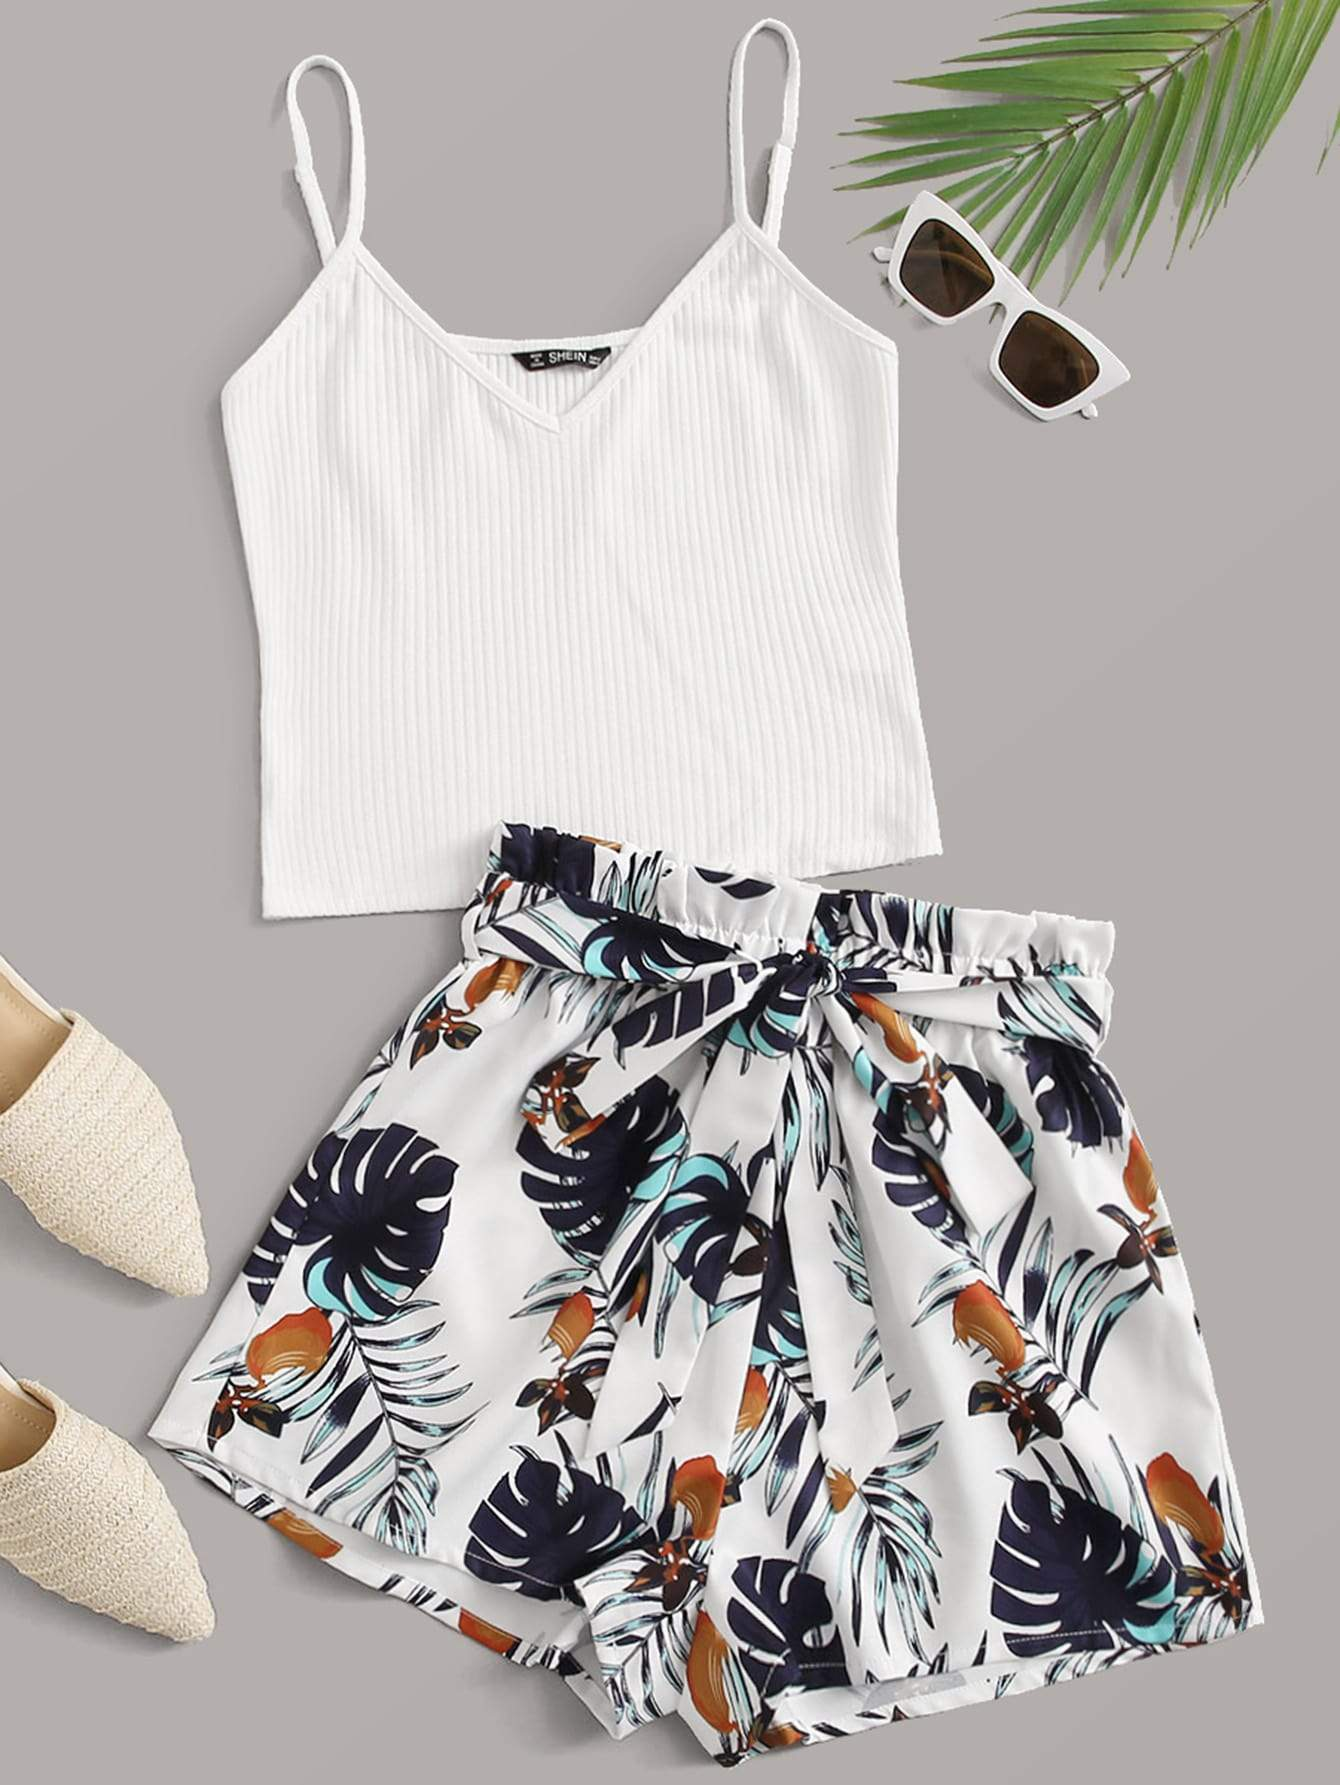 Rib-knit Cami Top & Belted Jungle Leaf Shorts Set - FLJ CORPORATIONS